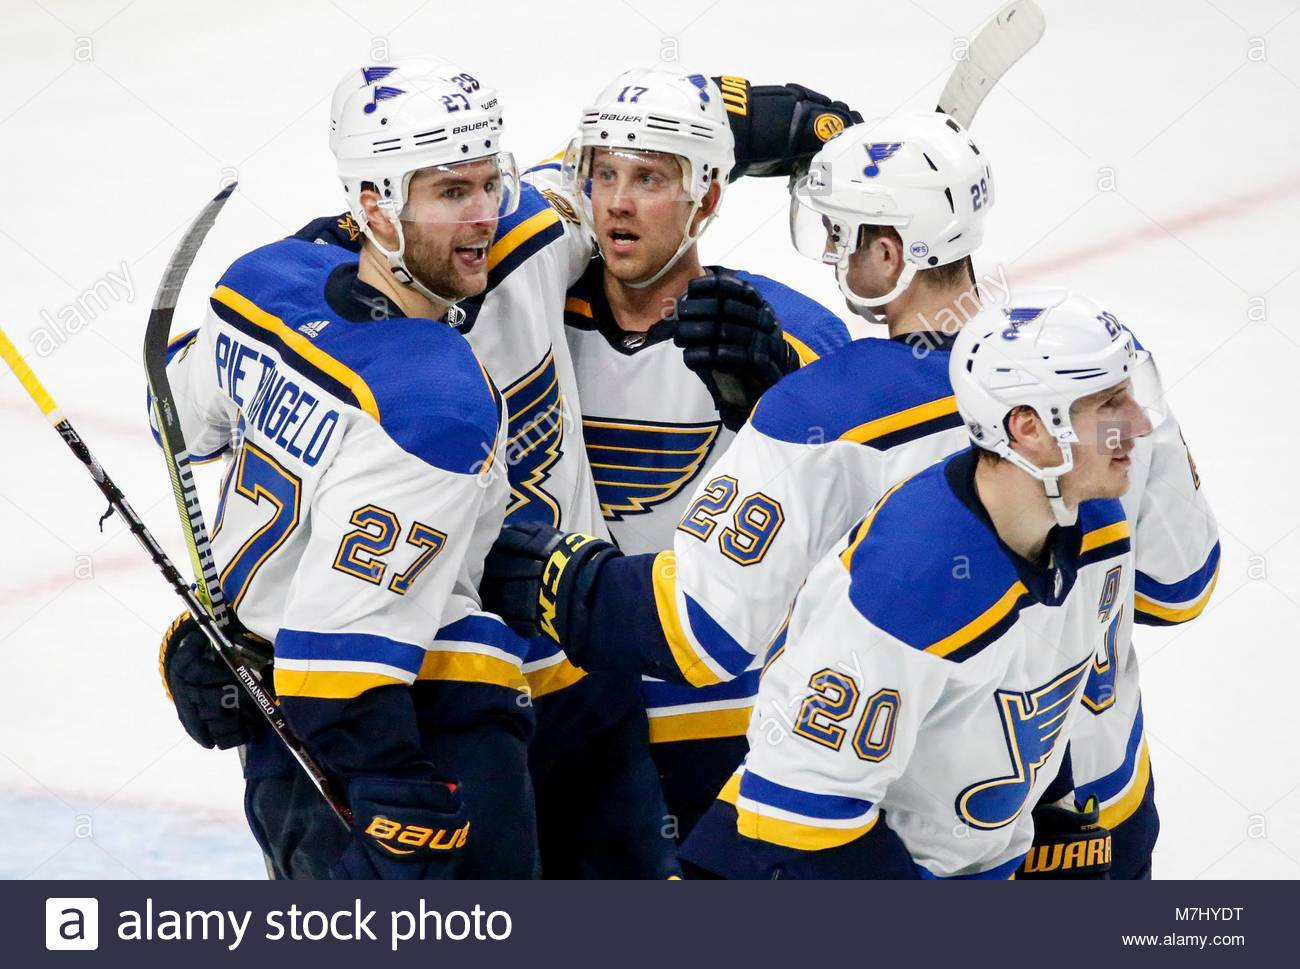 St Louis Blues Players Celebrate Their Goal Against Los Angeles Kings During A 2017 2018 NHL Hockey Game In The United States On March 10